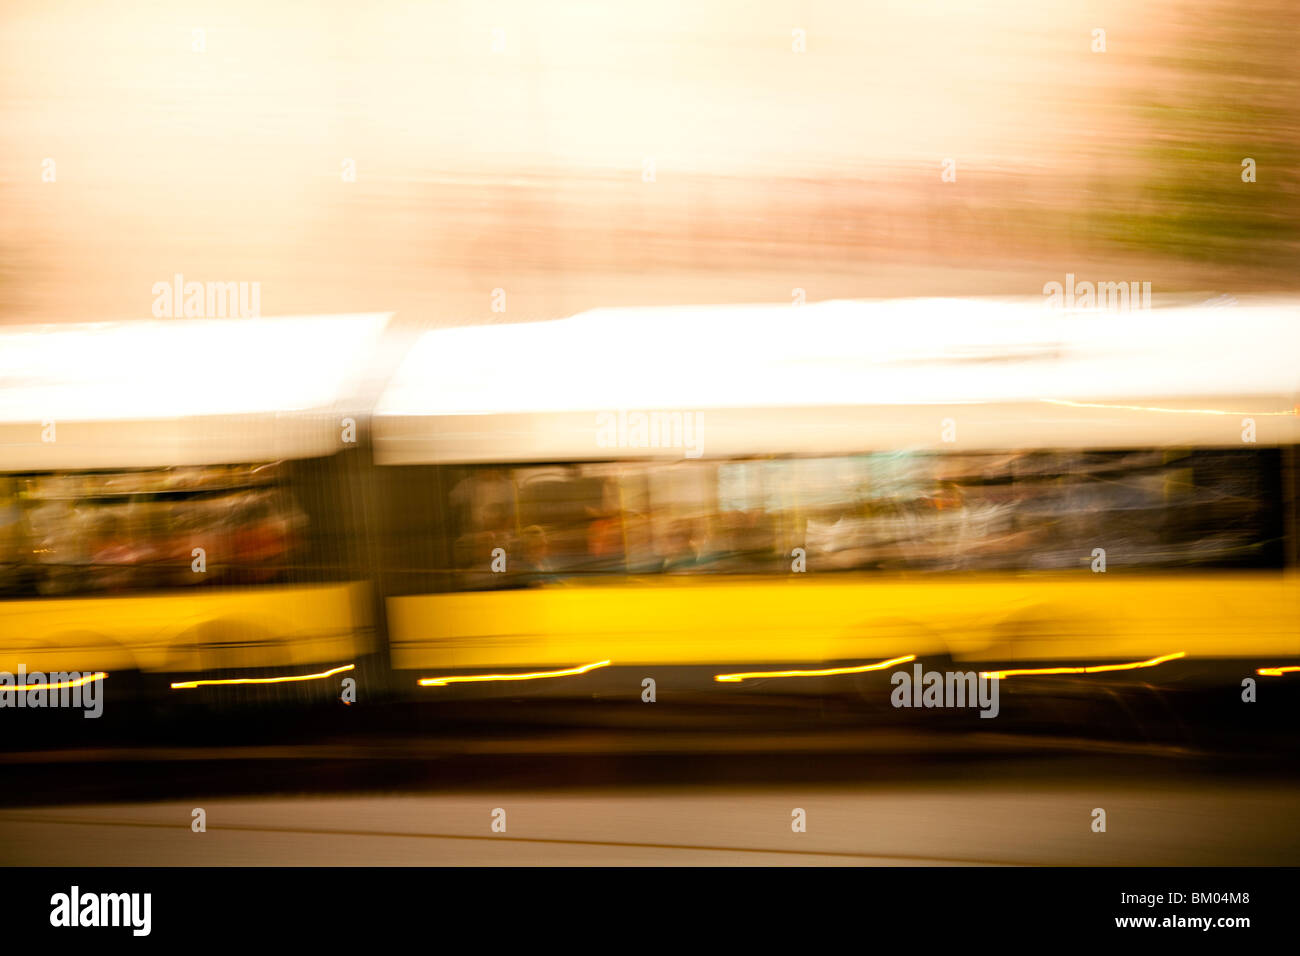 Panning shot of a tram by night, Berlin, Germany - Stock Image